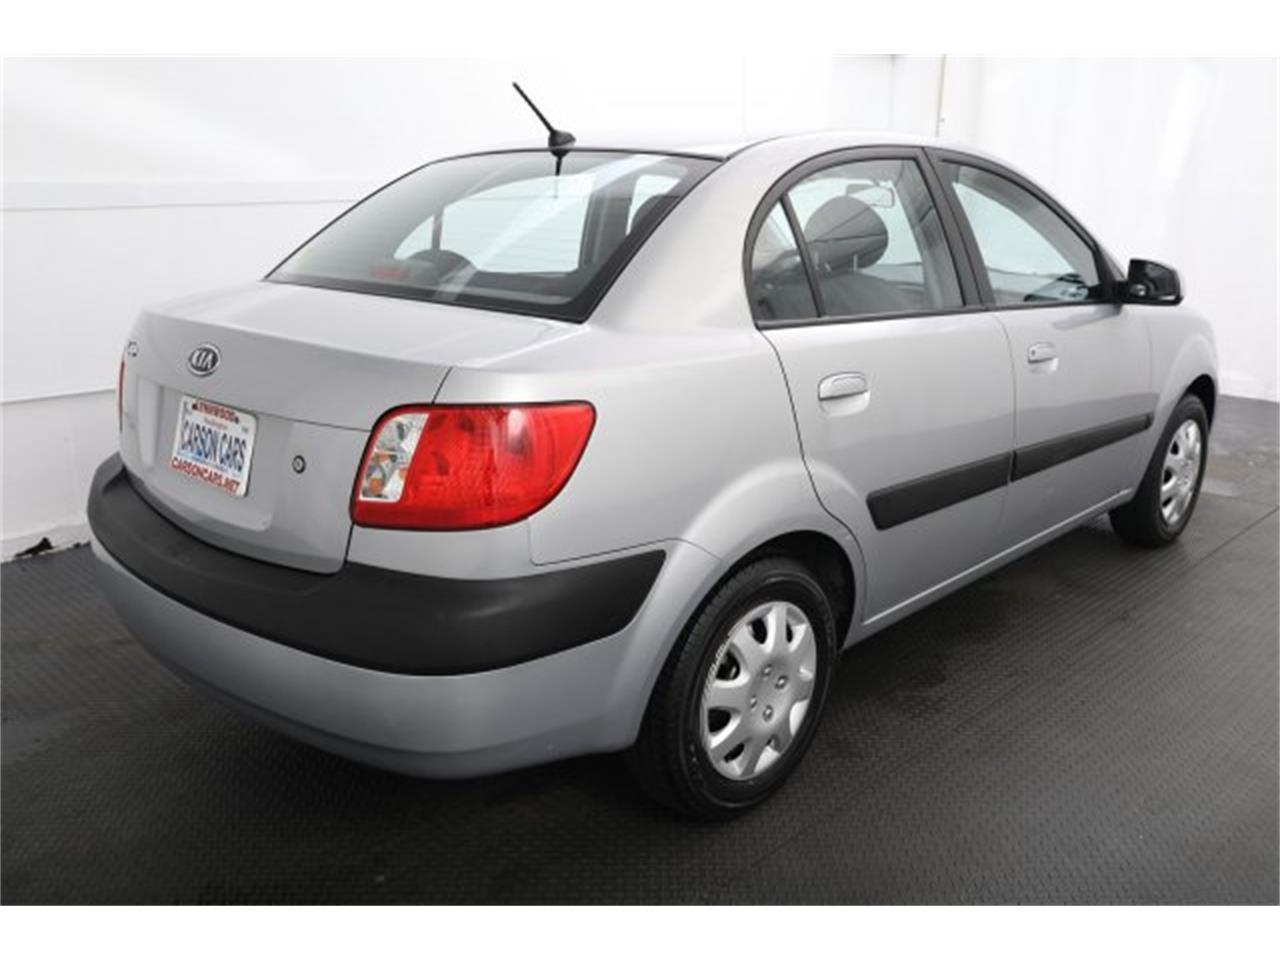 Large Picture of 2007 Kia Rio - $4,995.00 - LB8T